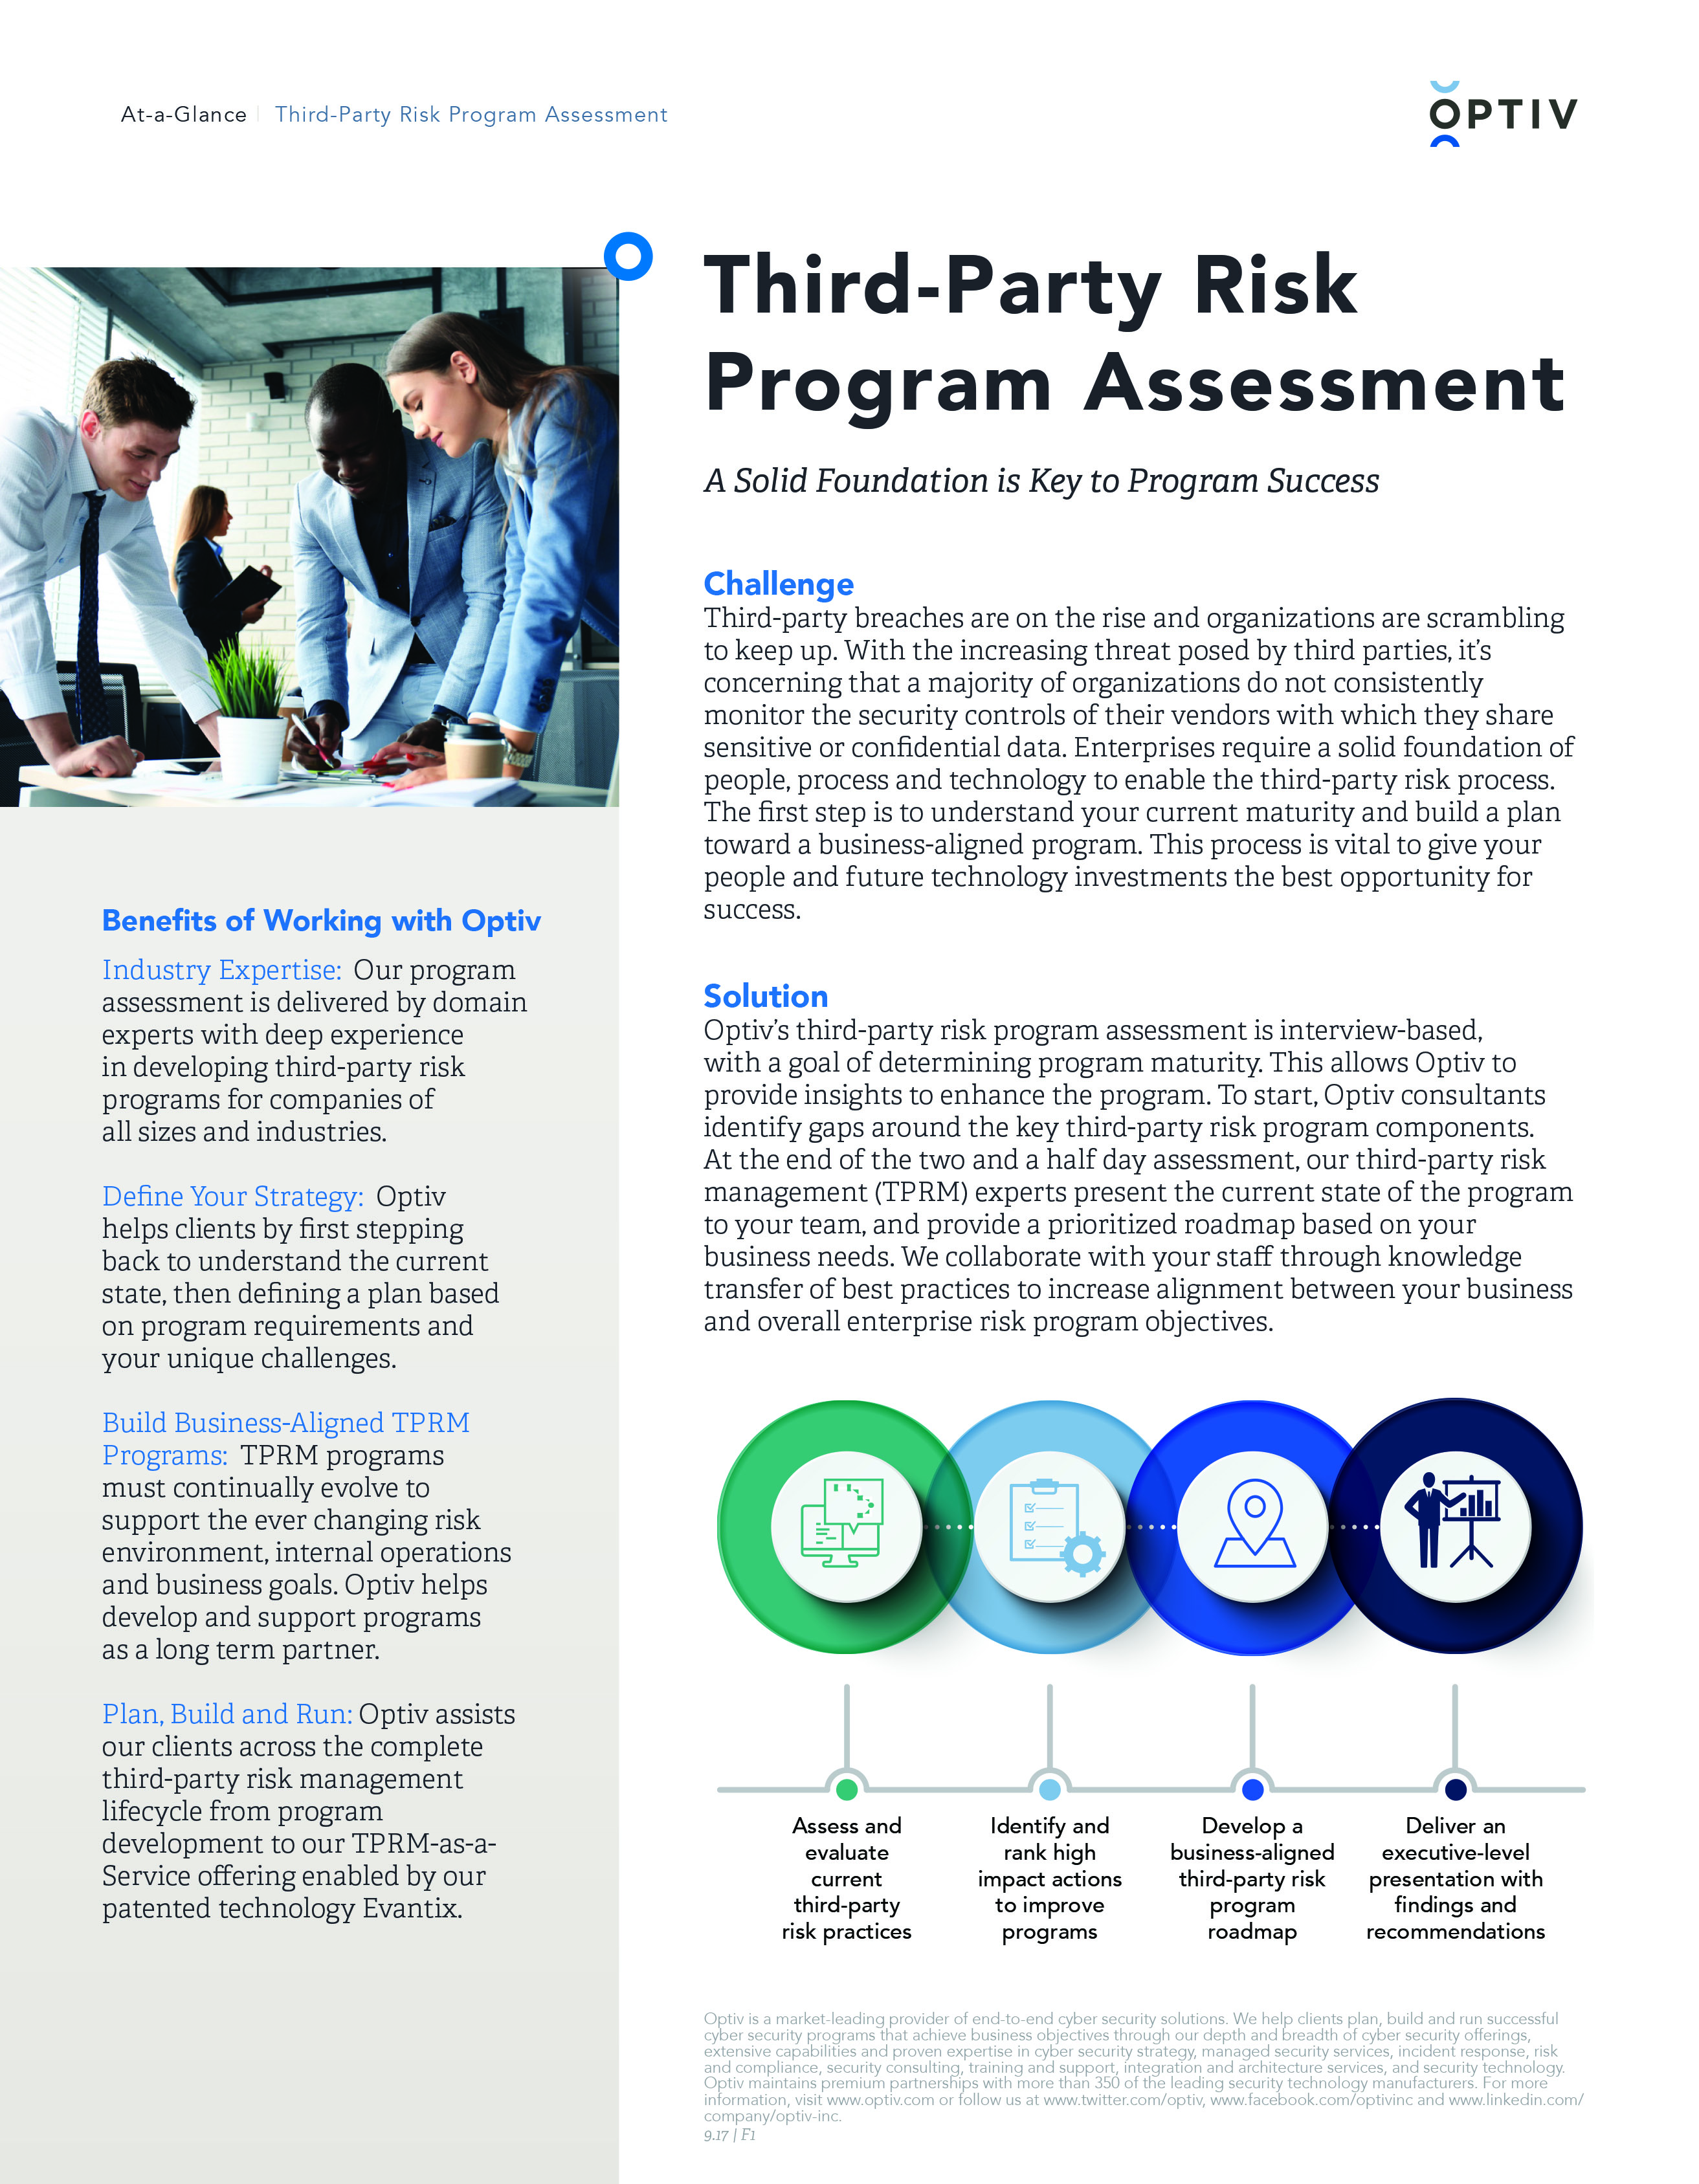 Third-Party Risk Program Assessment